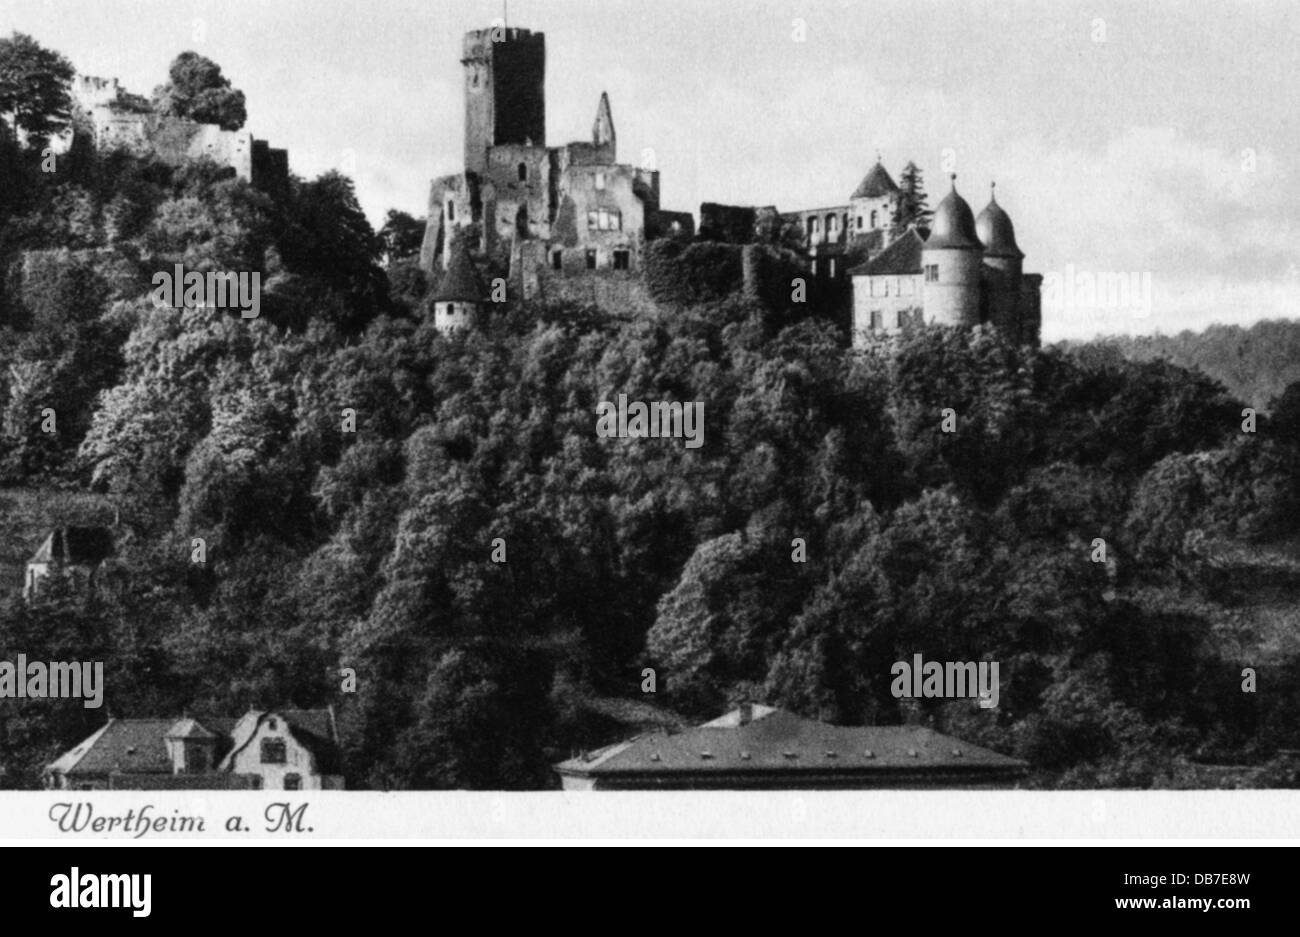 geography / travel, Germany, Wertheim, castles, castle ruin, built: 12th century, exterior view, picture postcard, - Stock Image